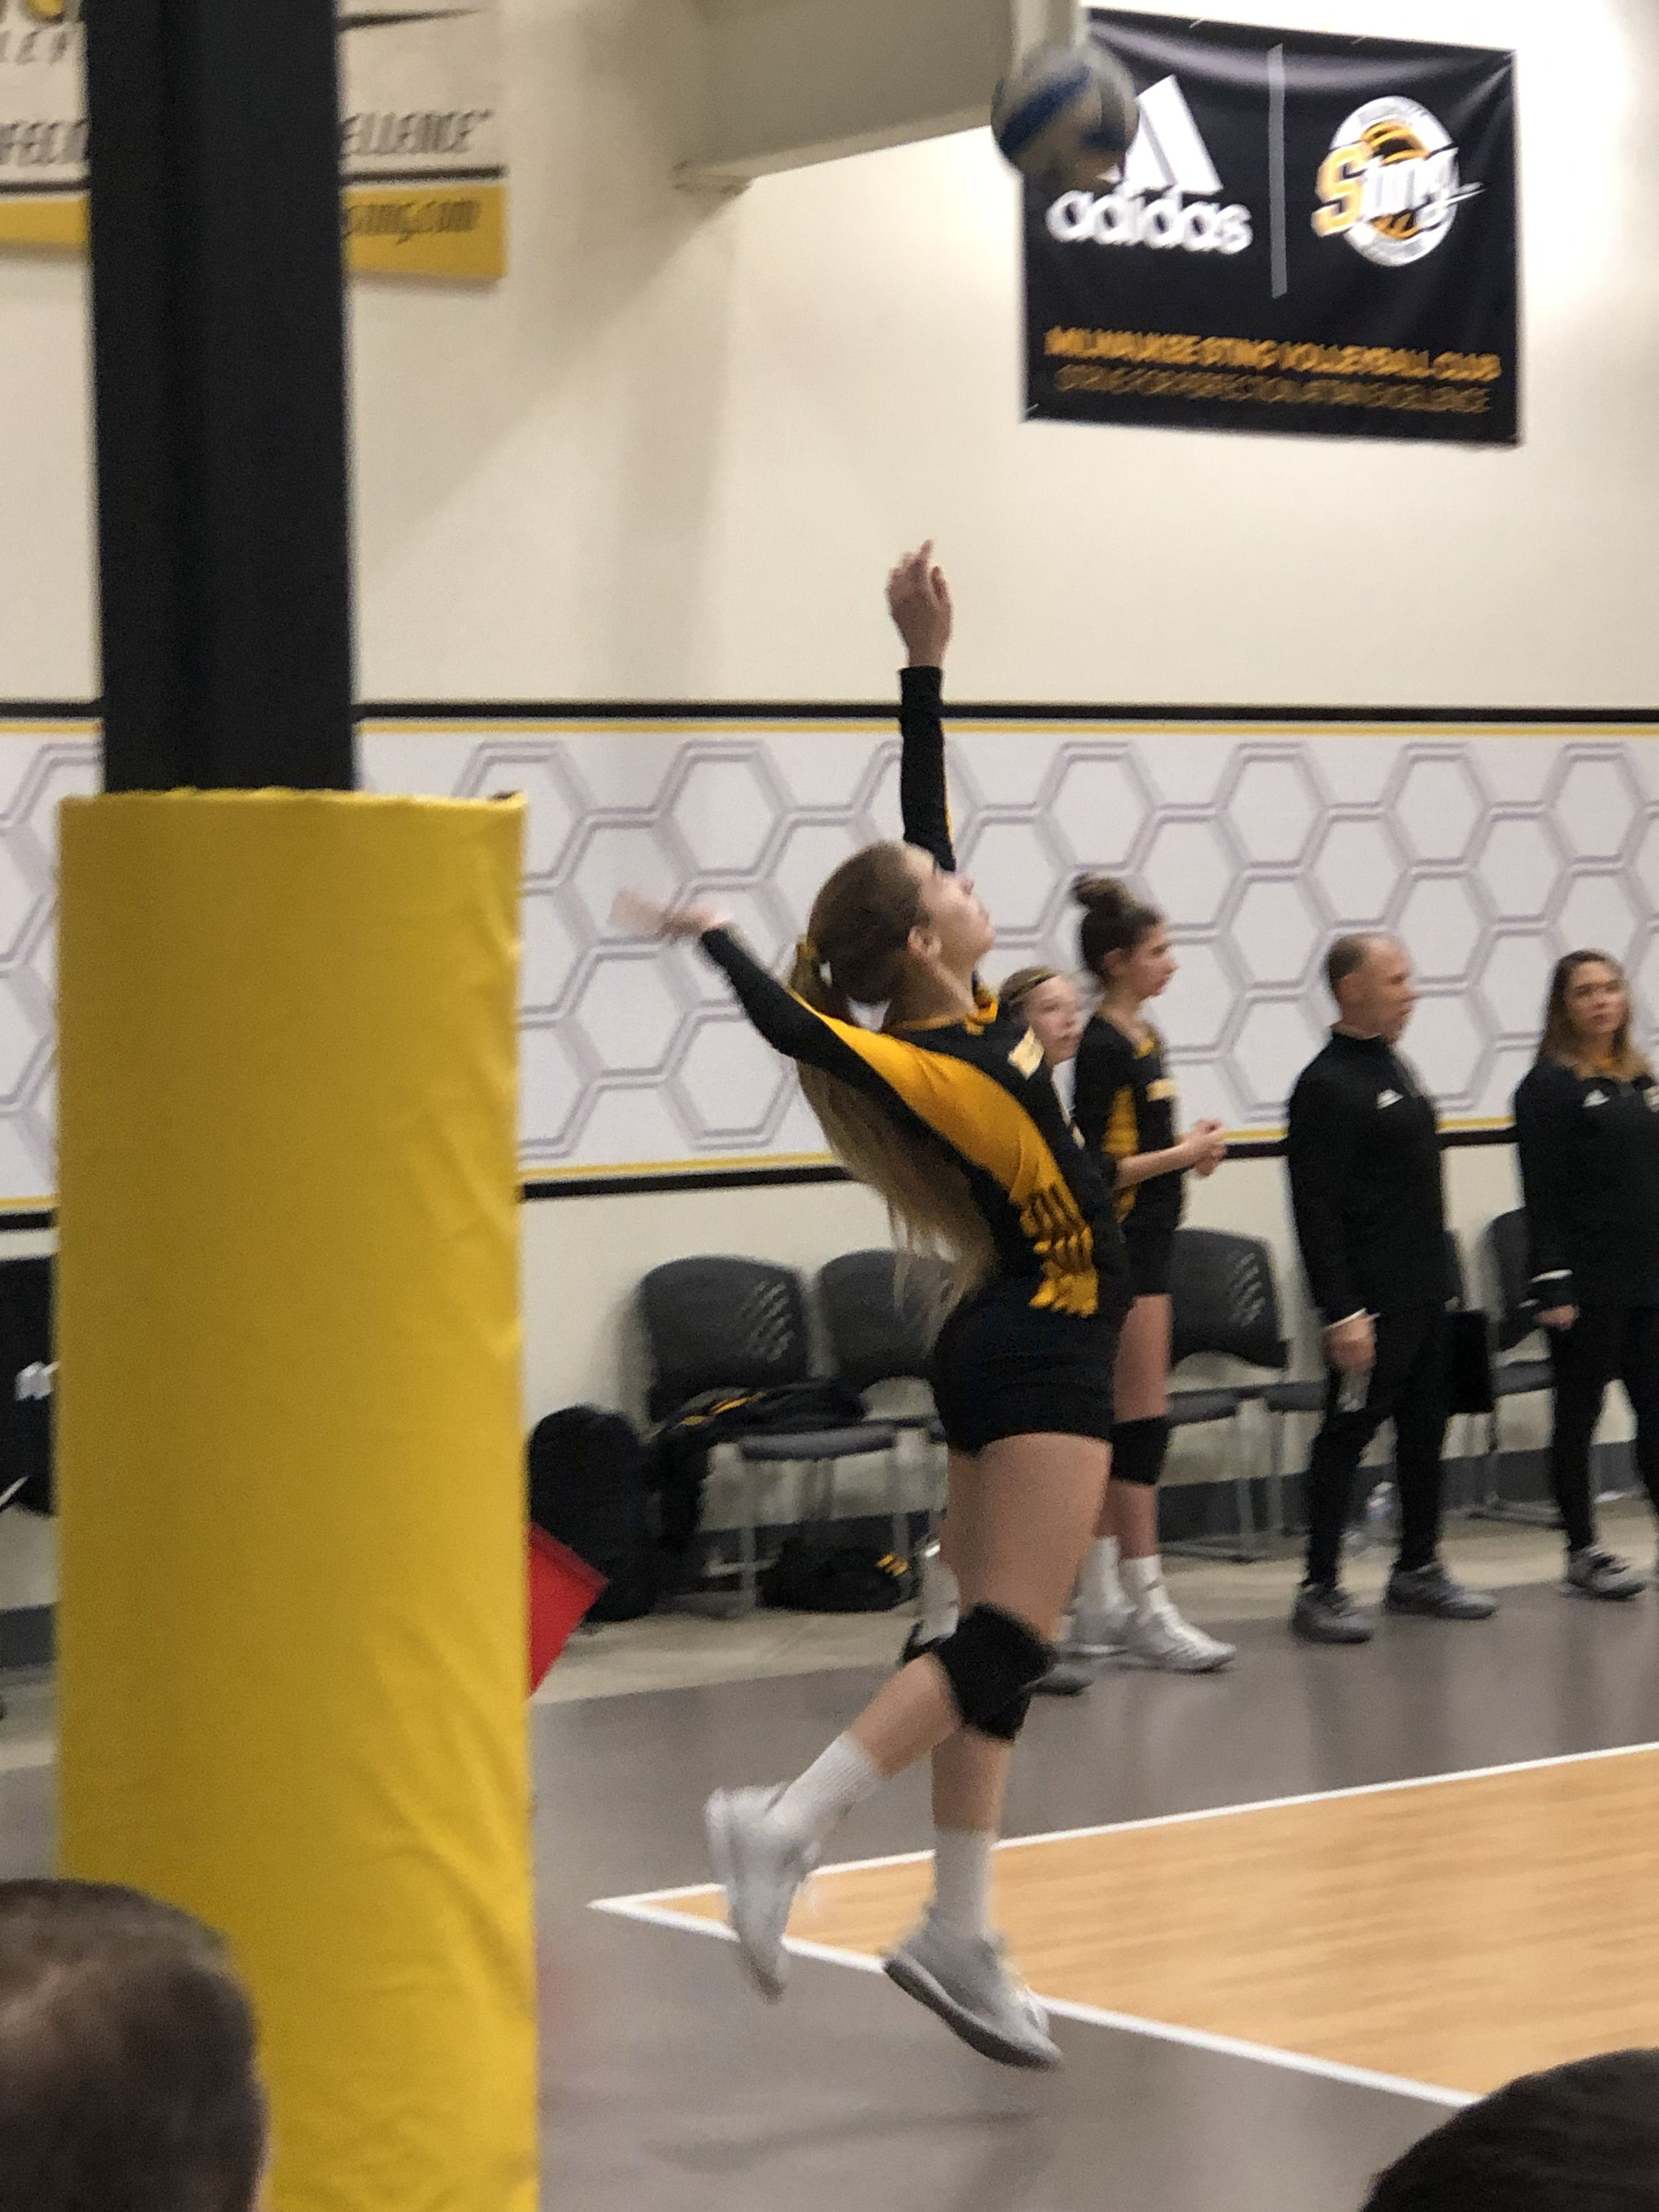 Pin By Jazmin Zarate On Fisico De Hamball Volleyball Team Volleyball Volley